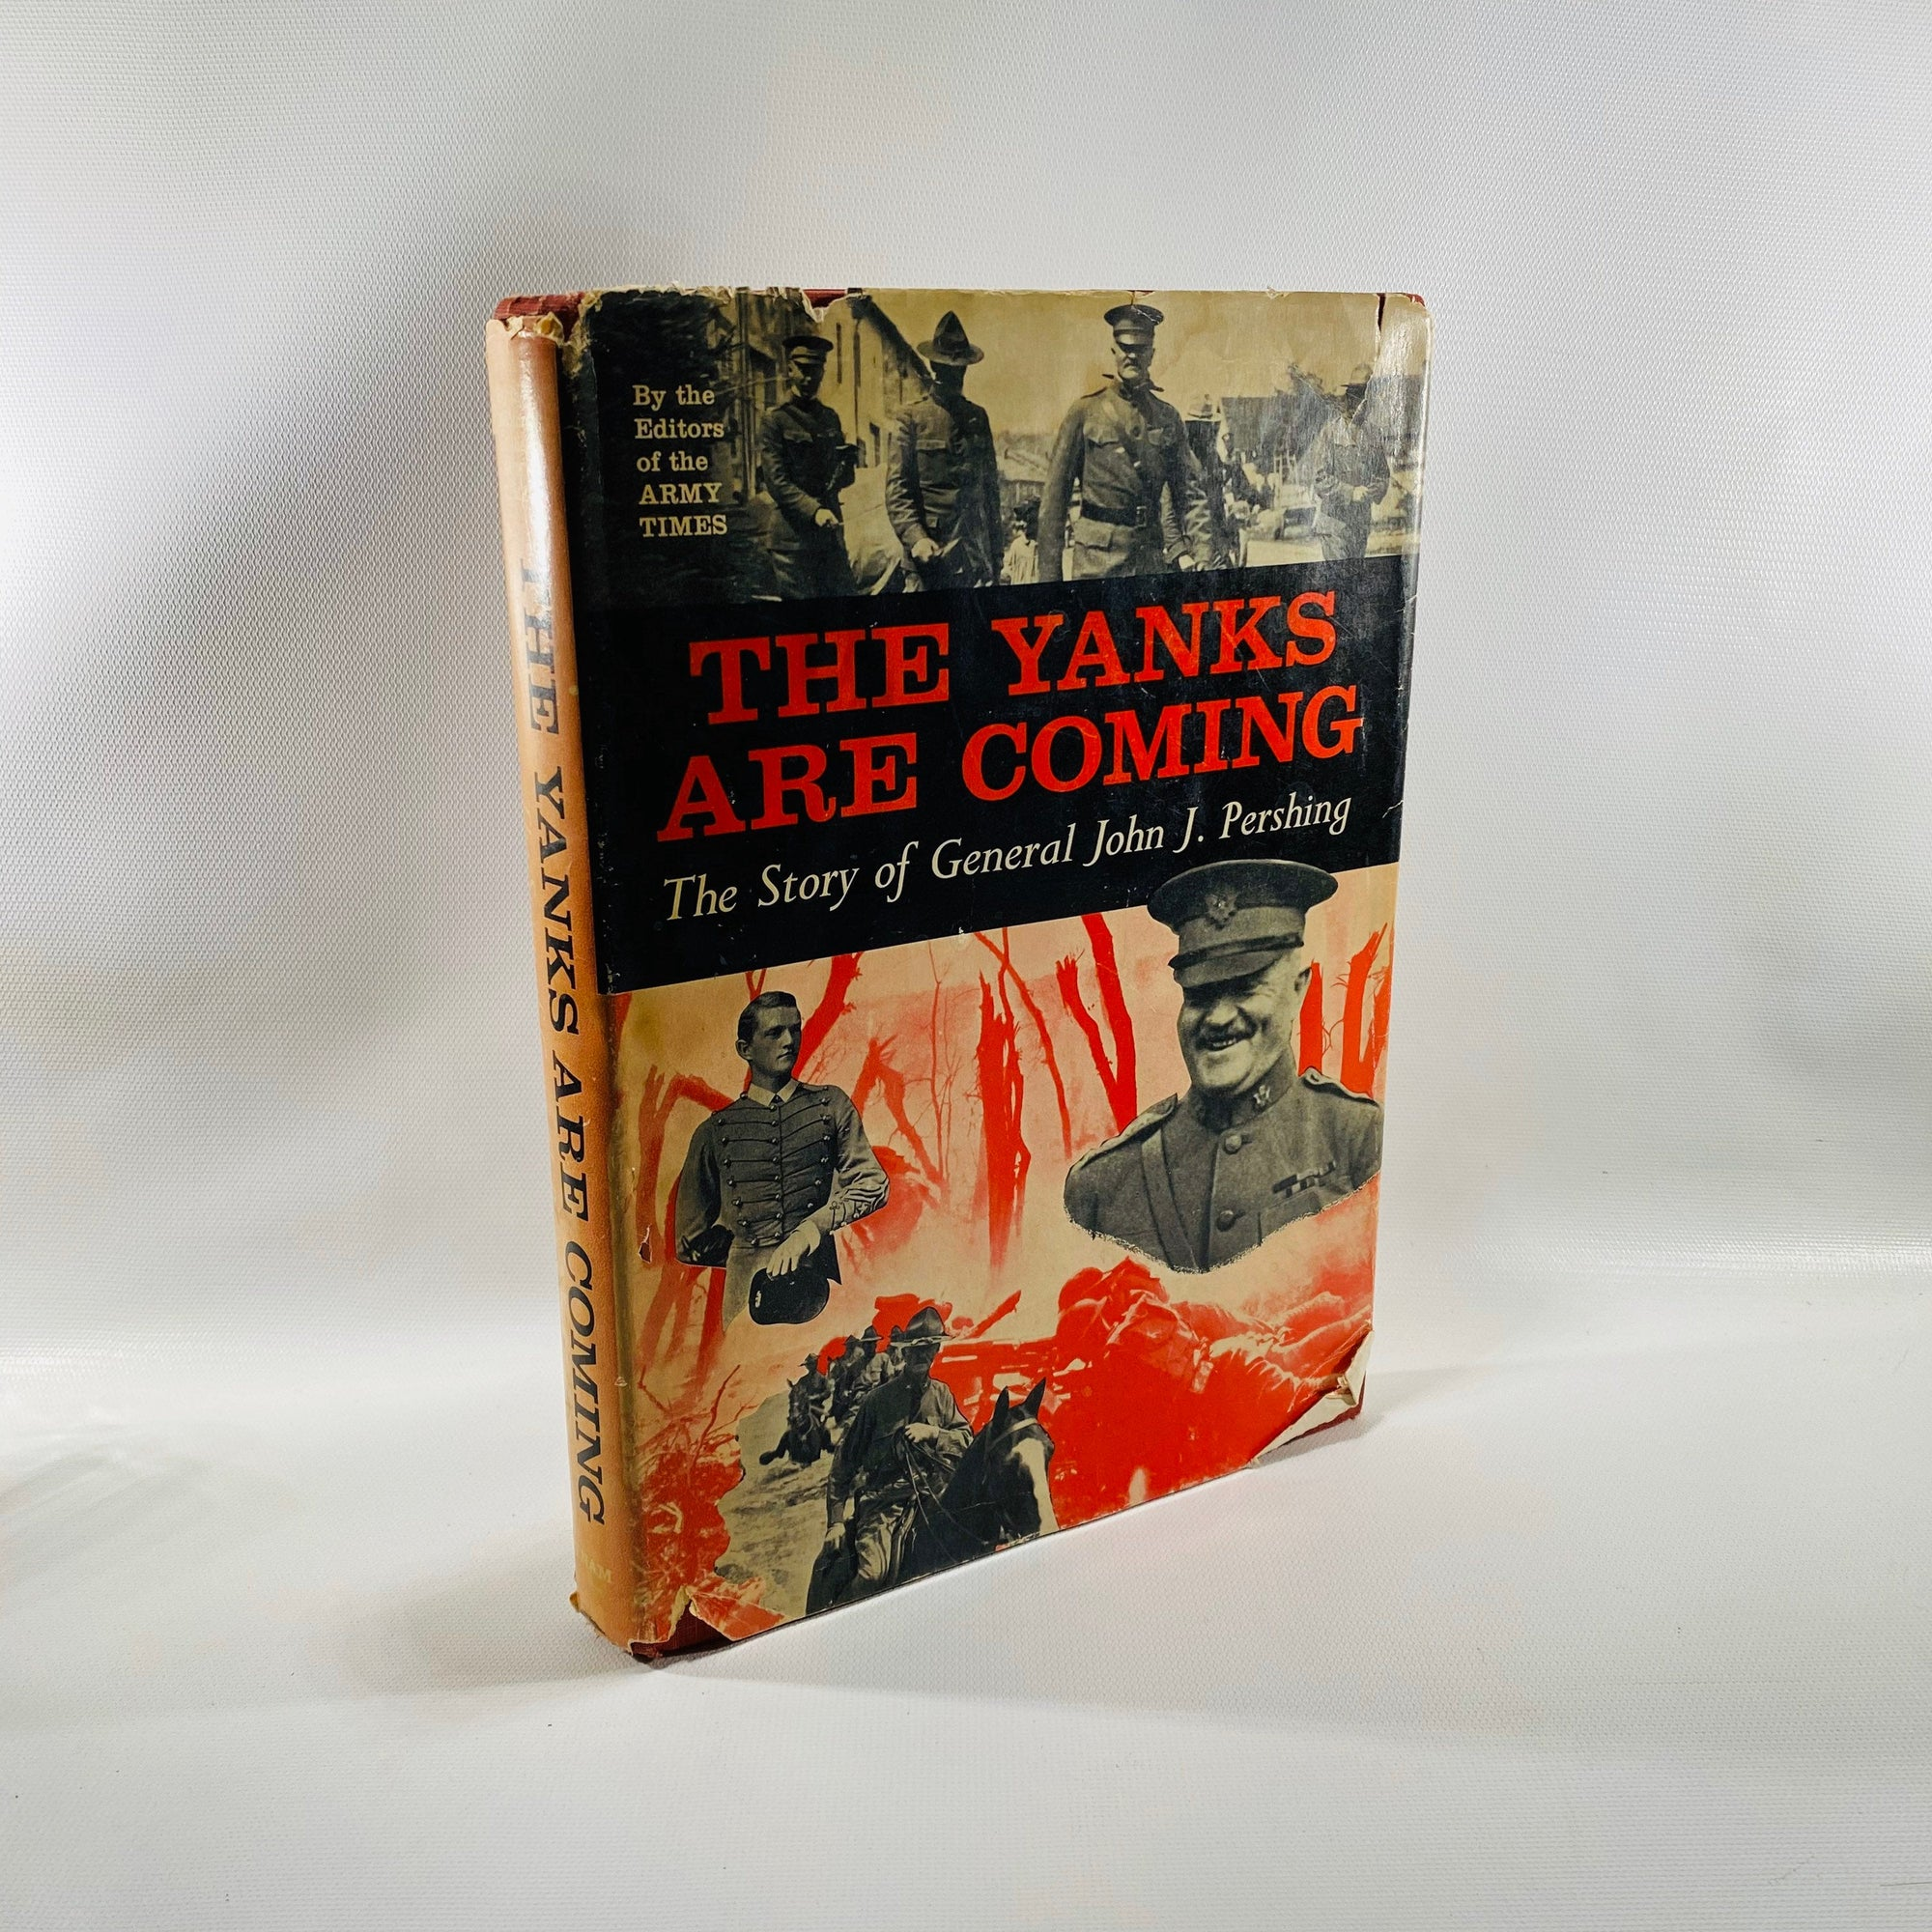 The Yanks Are Coming The Story of General John J. Pershing By the Editors of the Army Times 1960